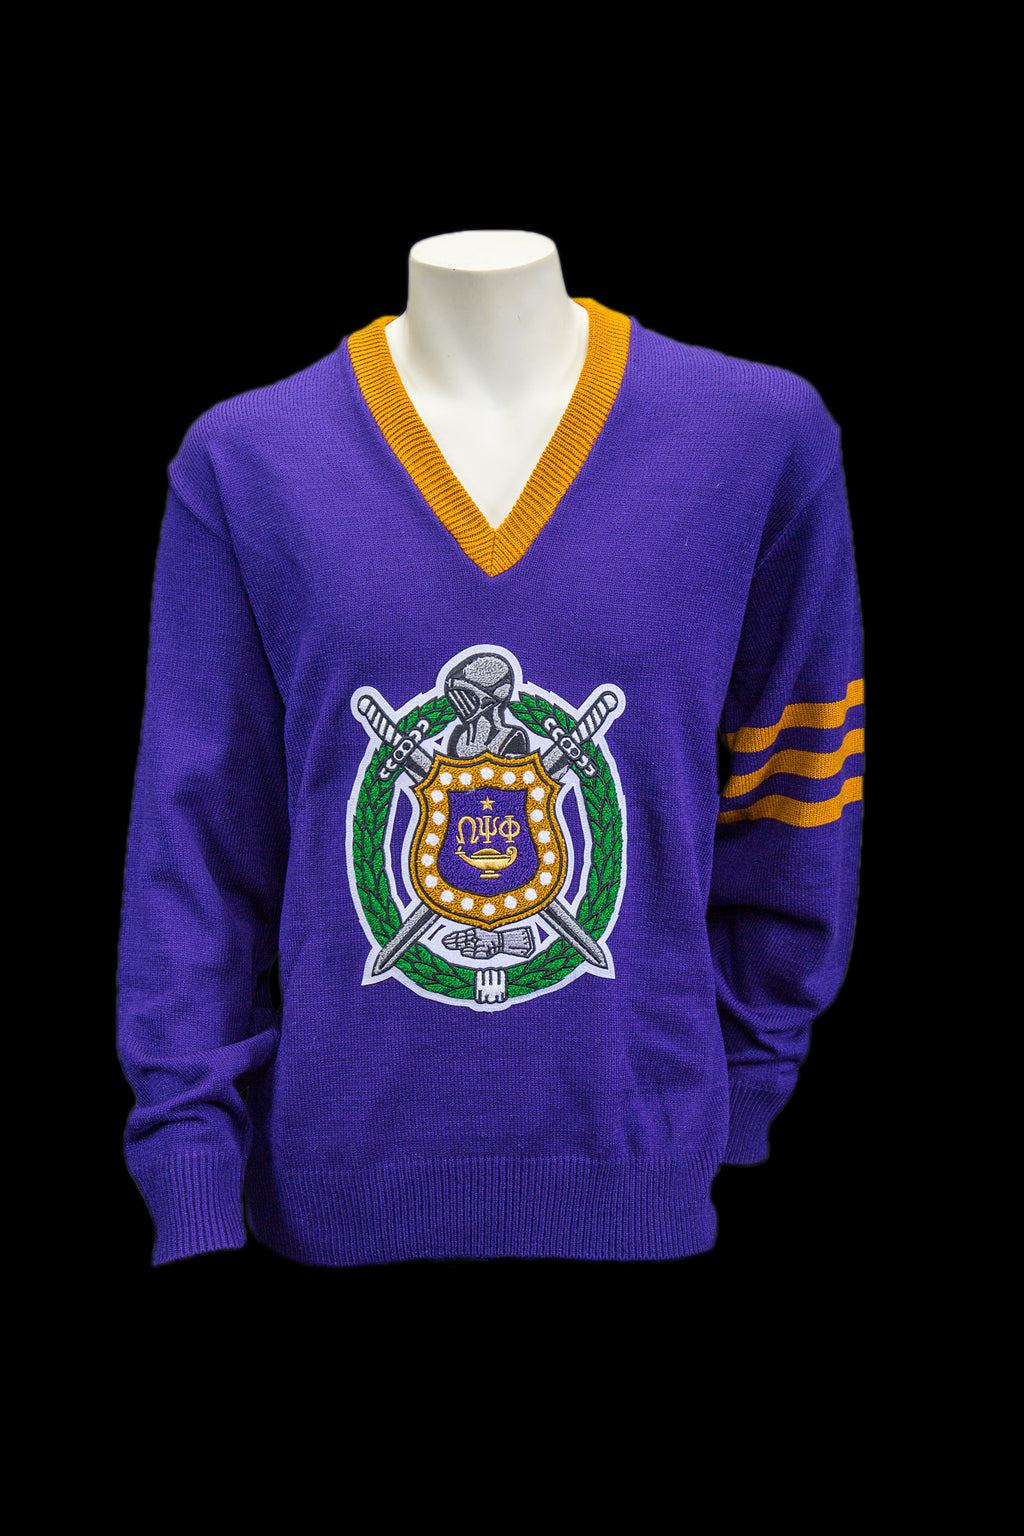 Omega Purple V-neck Sweater with Chenille Crest